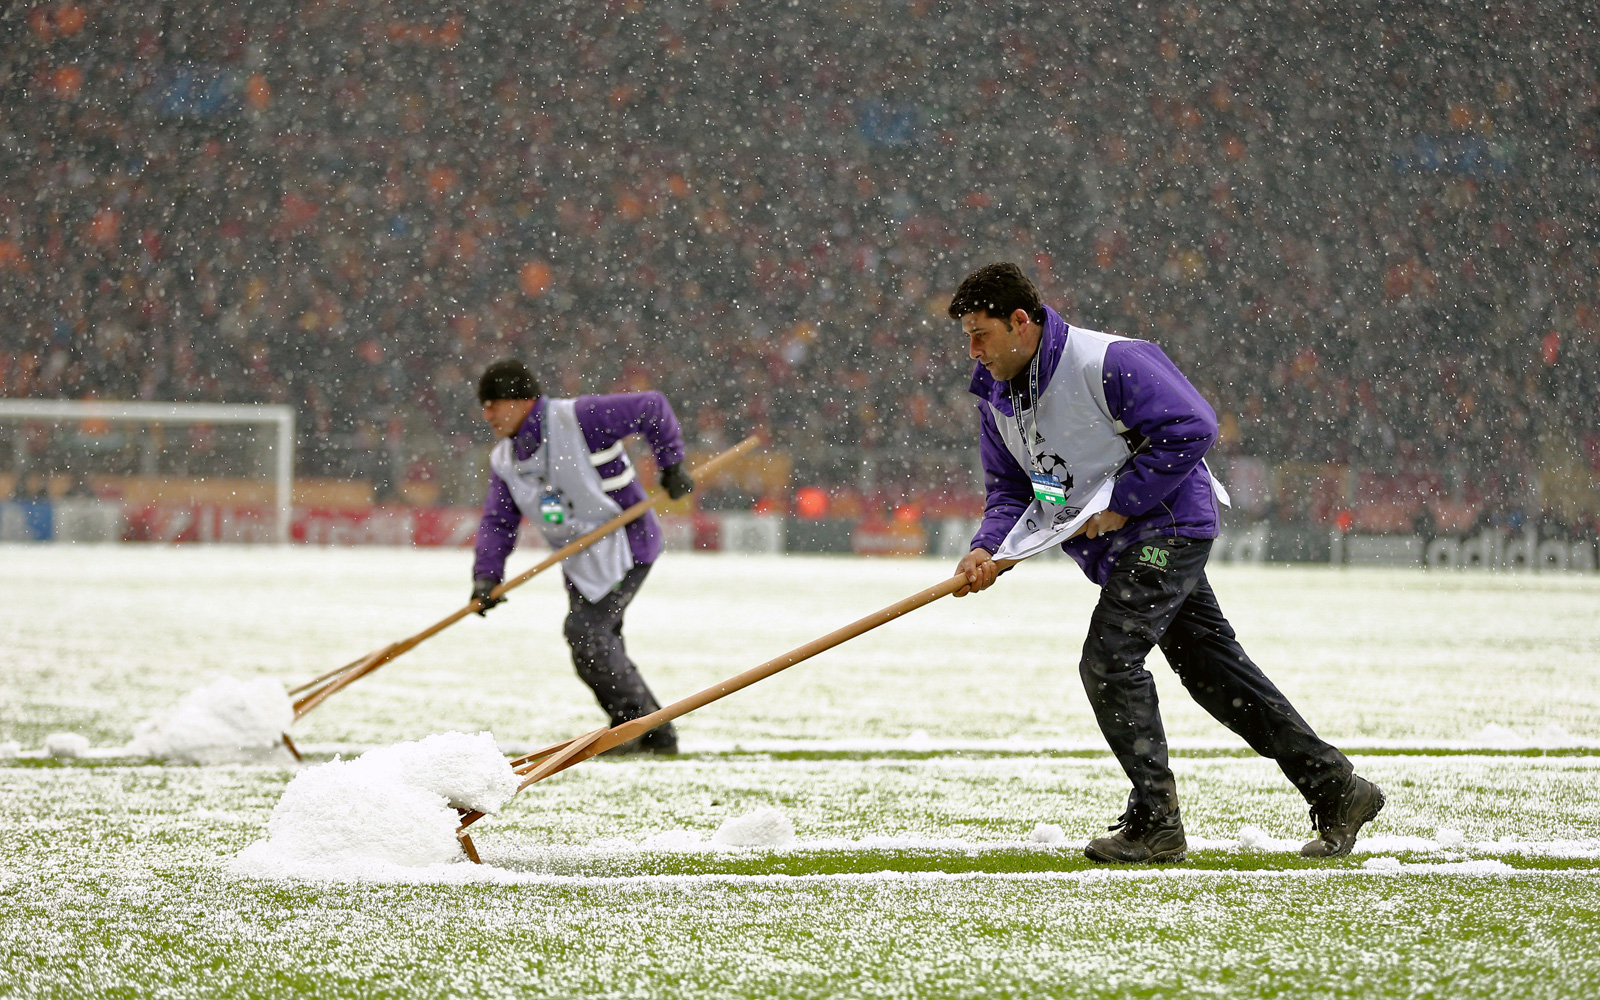 Groundsmen clear the field in Istanbul at the Champions League match between Galatasaray and Juventus.